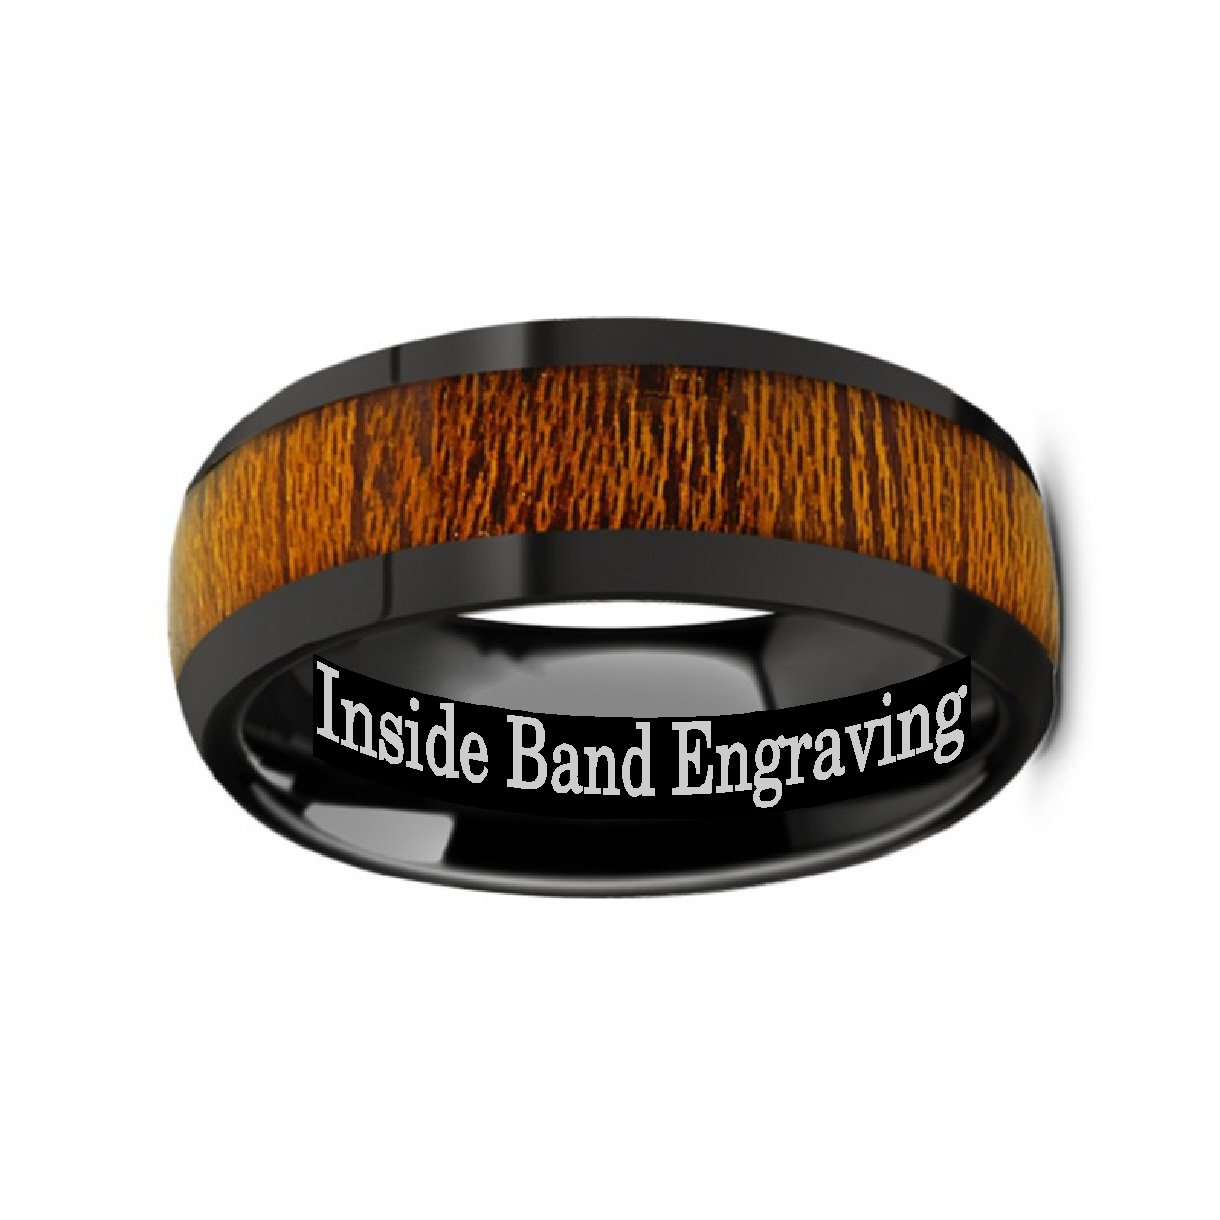 MABINI Black Ceramic with Rich Genuine Mahogany Wood Inlay Men's Domed Wedding Band with Polished Finish - 8mm from Thorsten by Roy Rose Jewelry by Thorsten (Image #3)